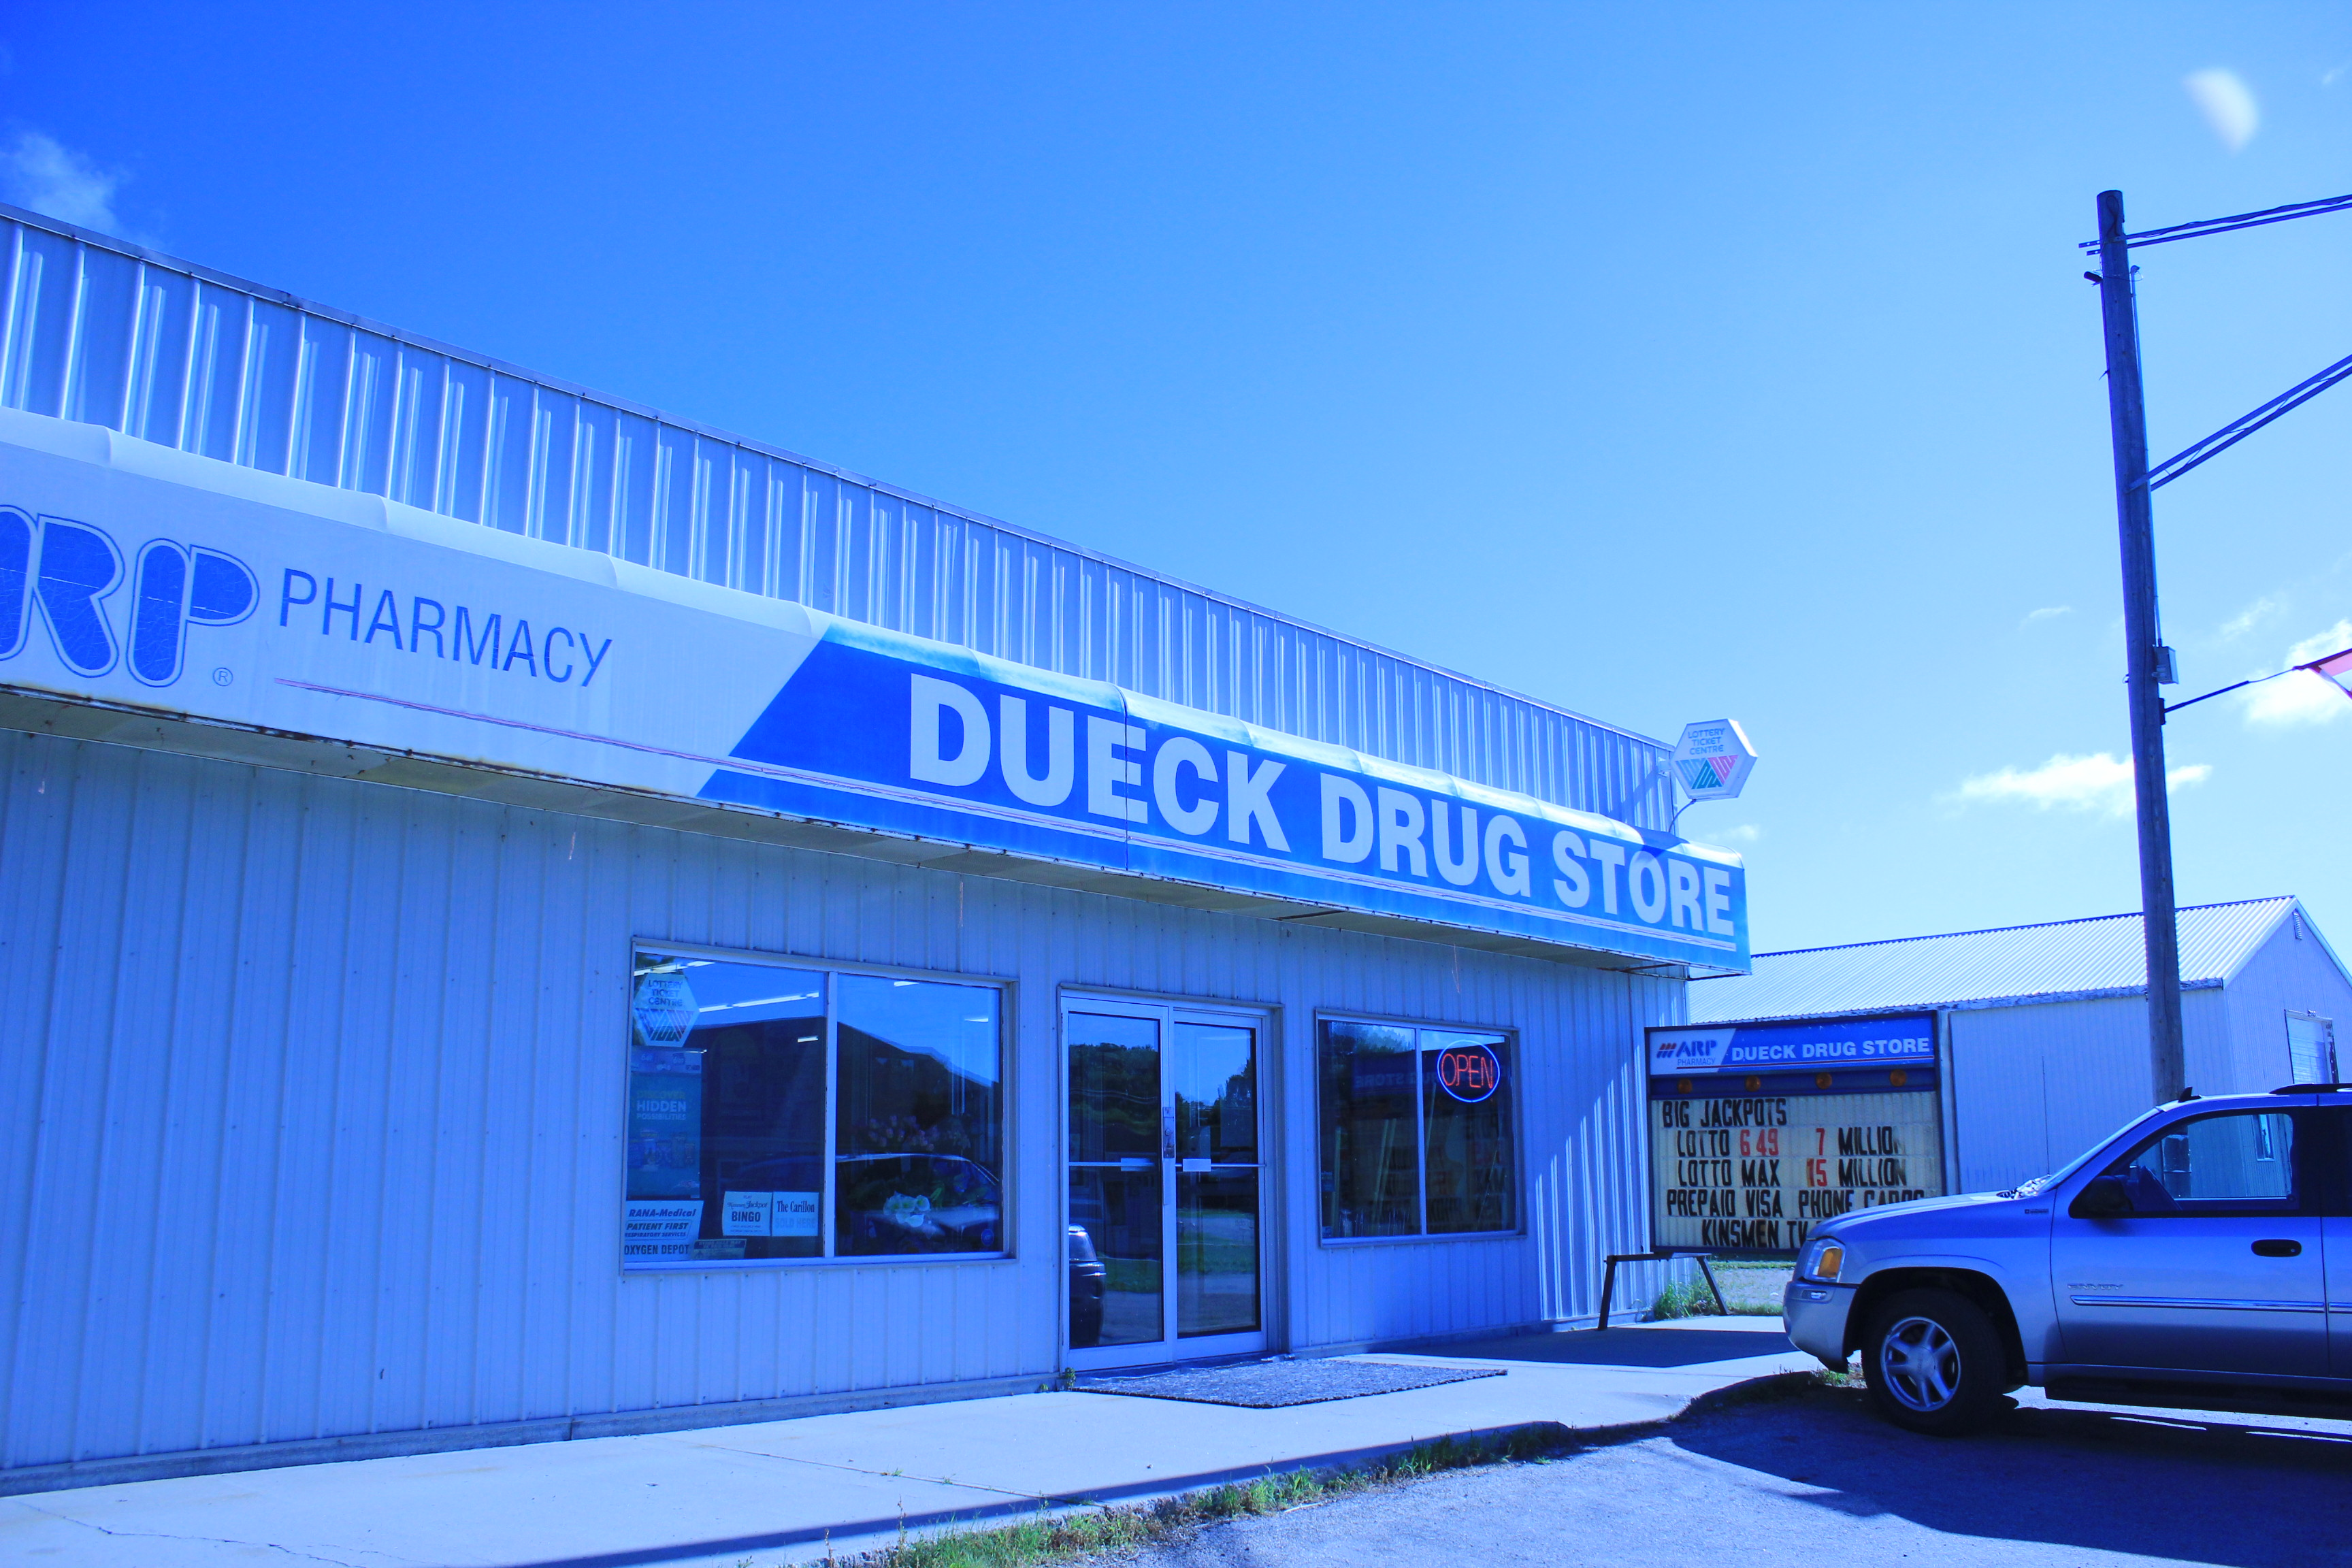 Dueck Drug Store